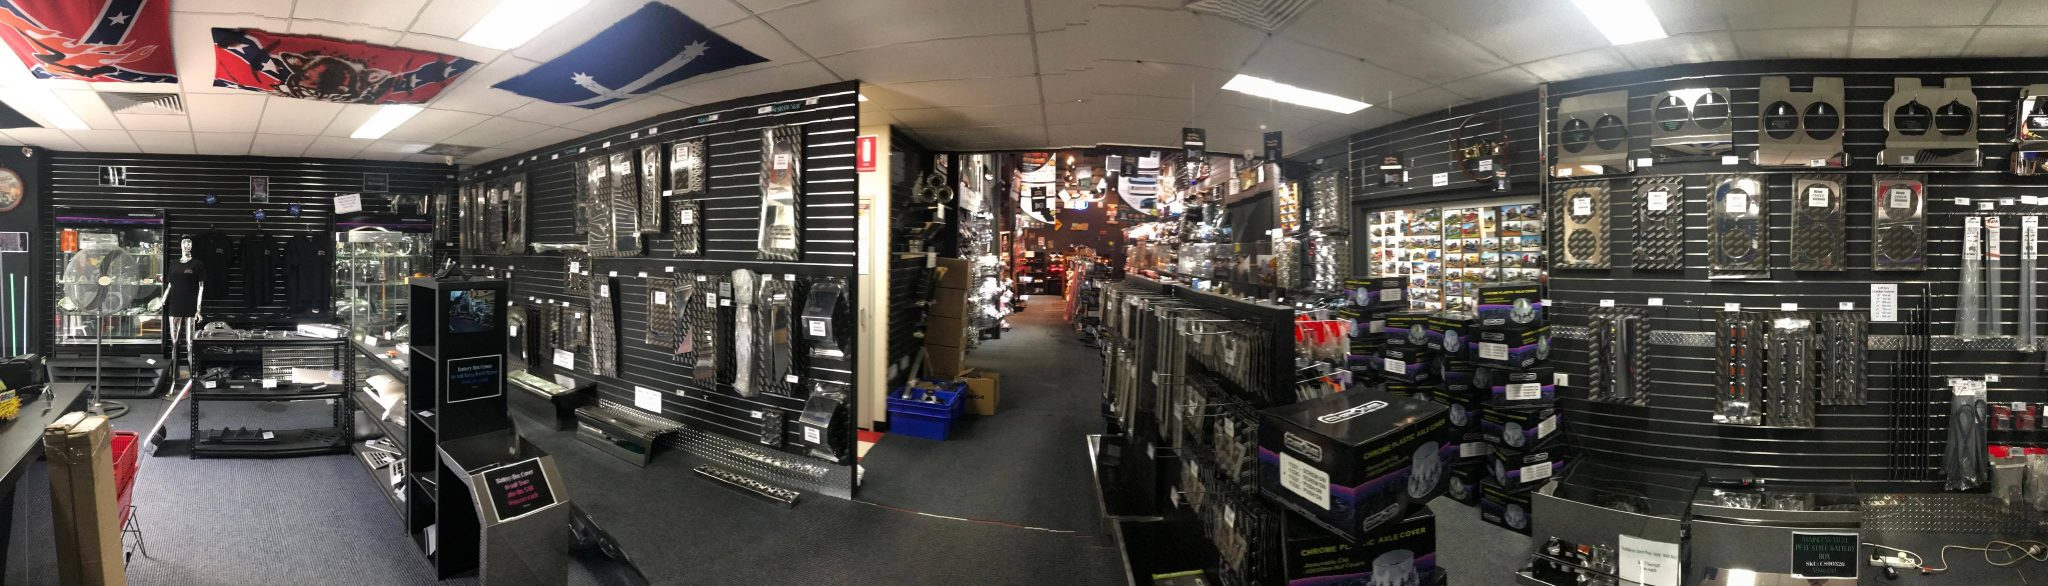 Truckers Toy Store - Melbourne Store